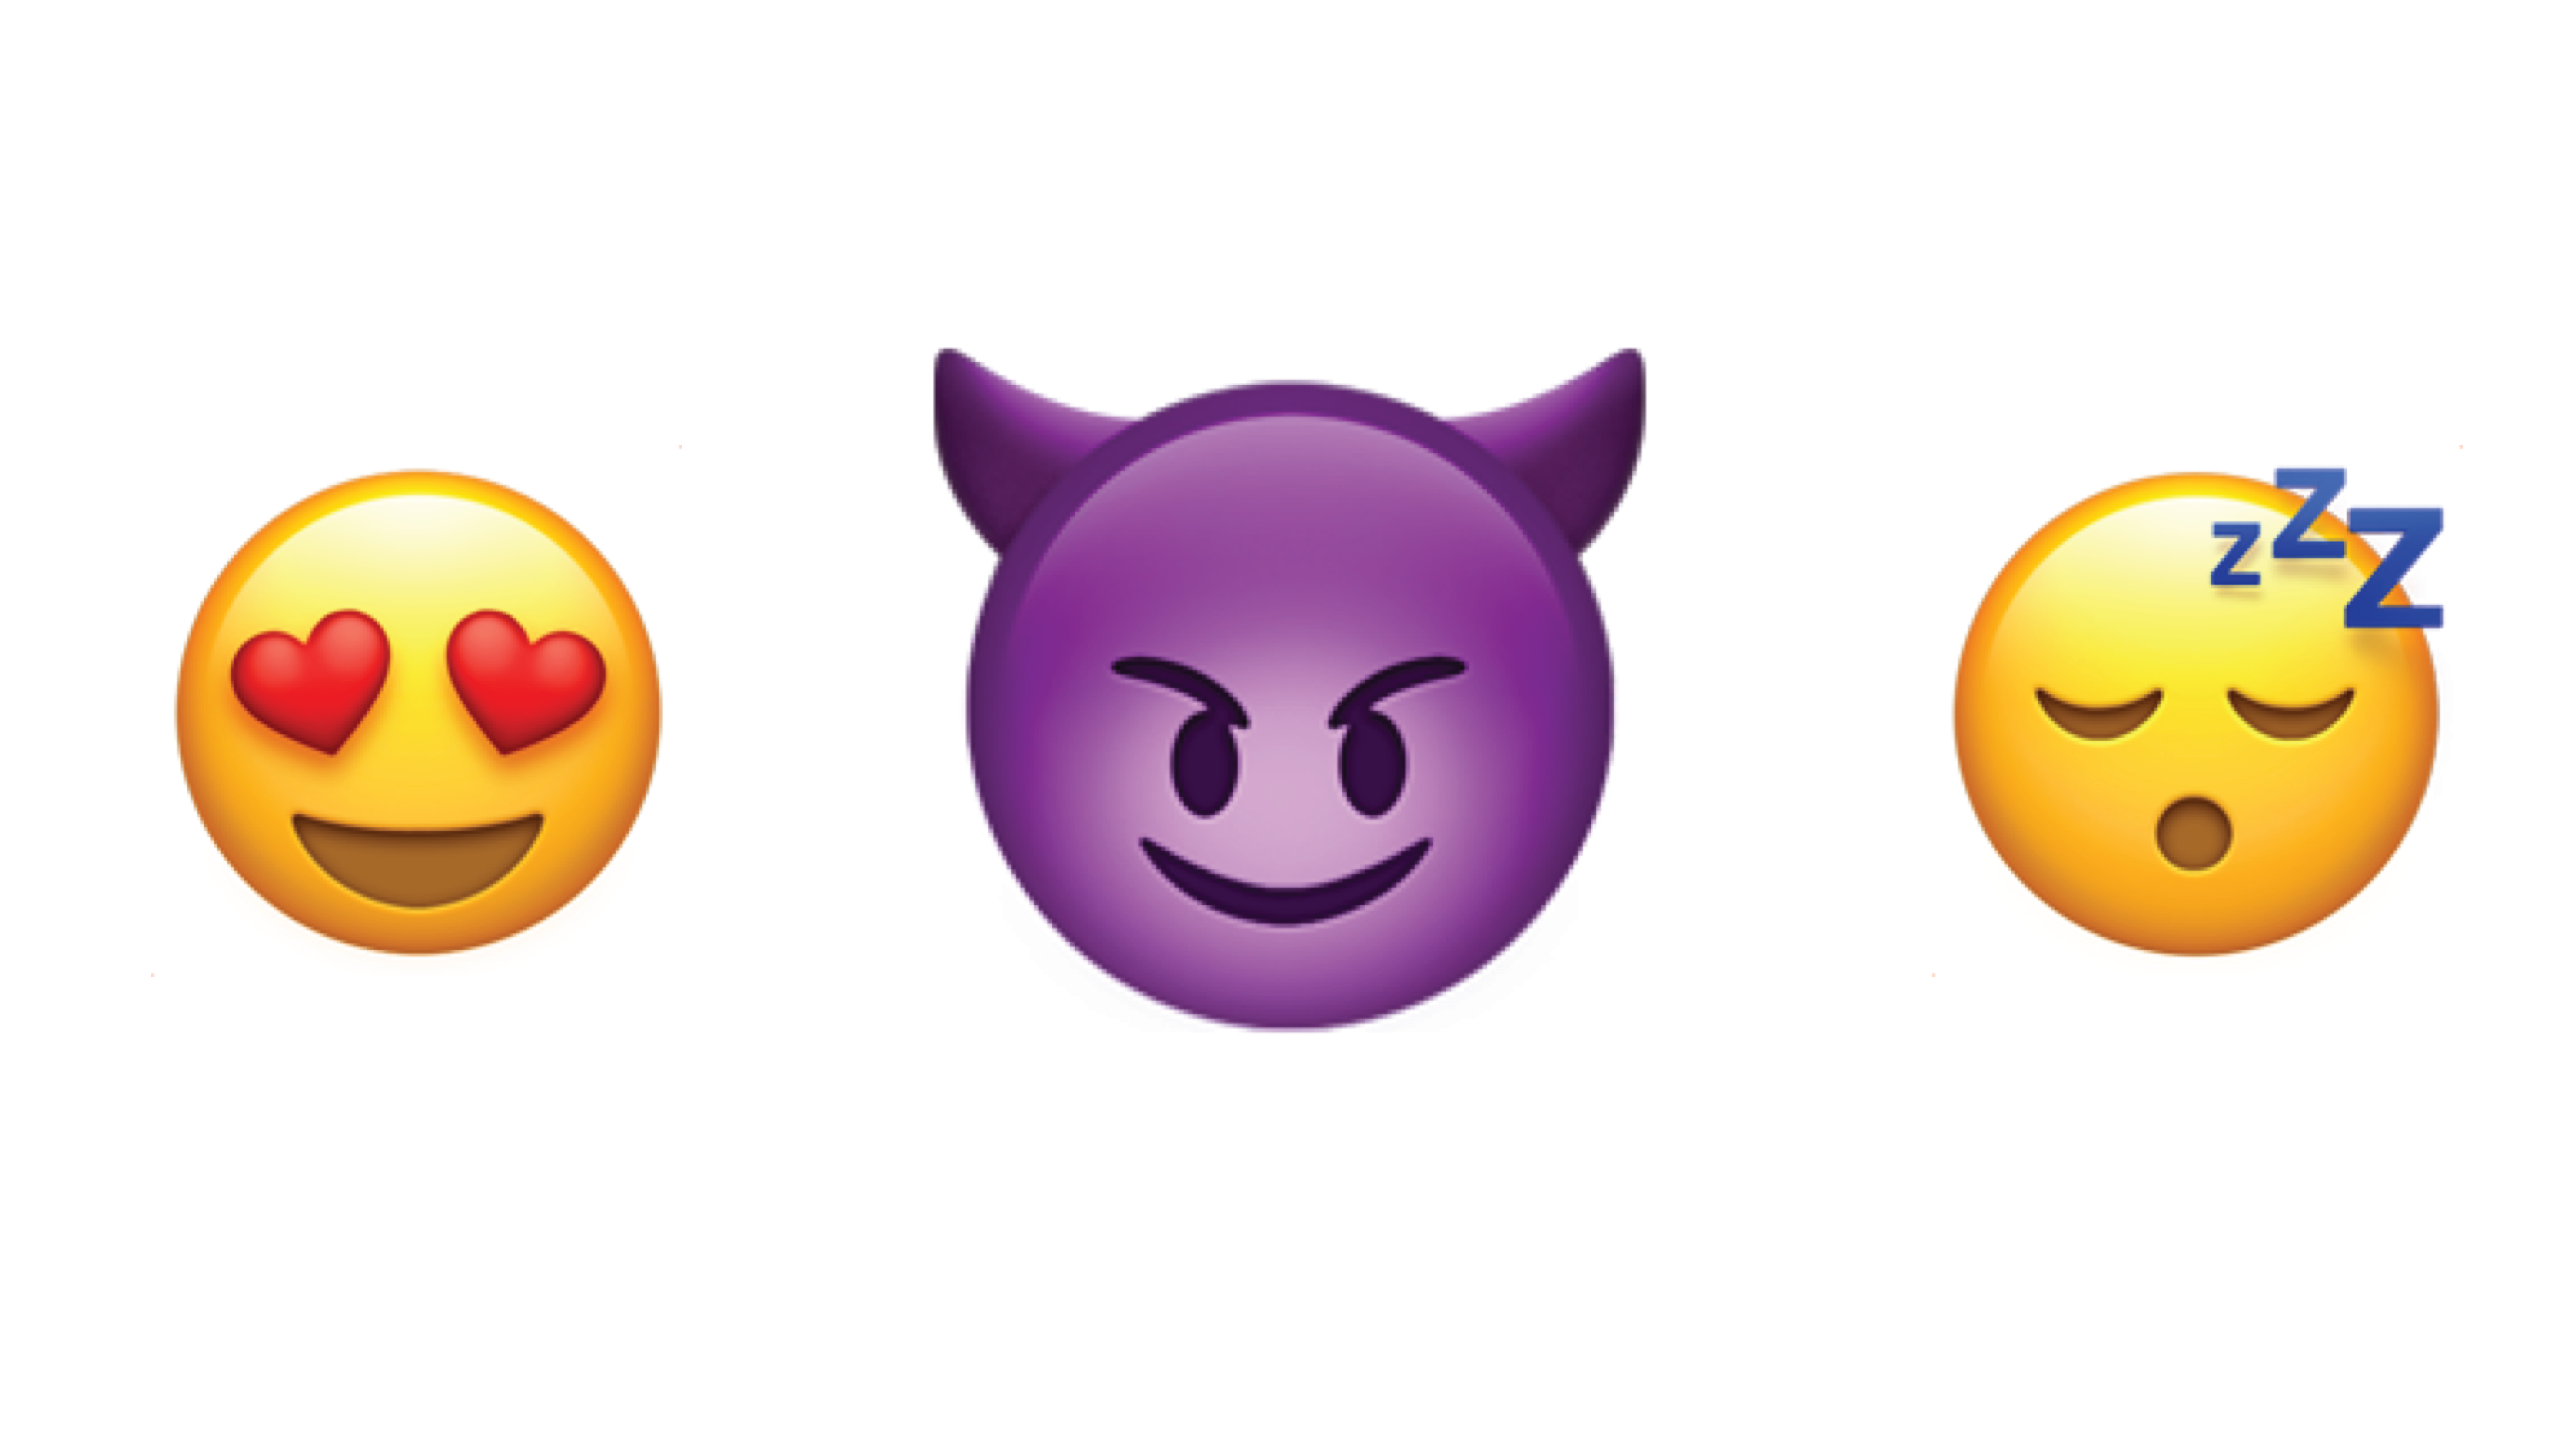 The Easiest Way To Access Emojis On MacOS